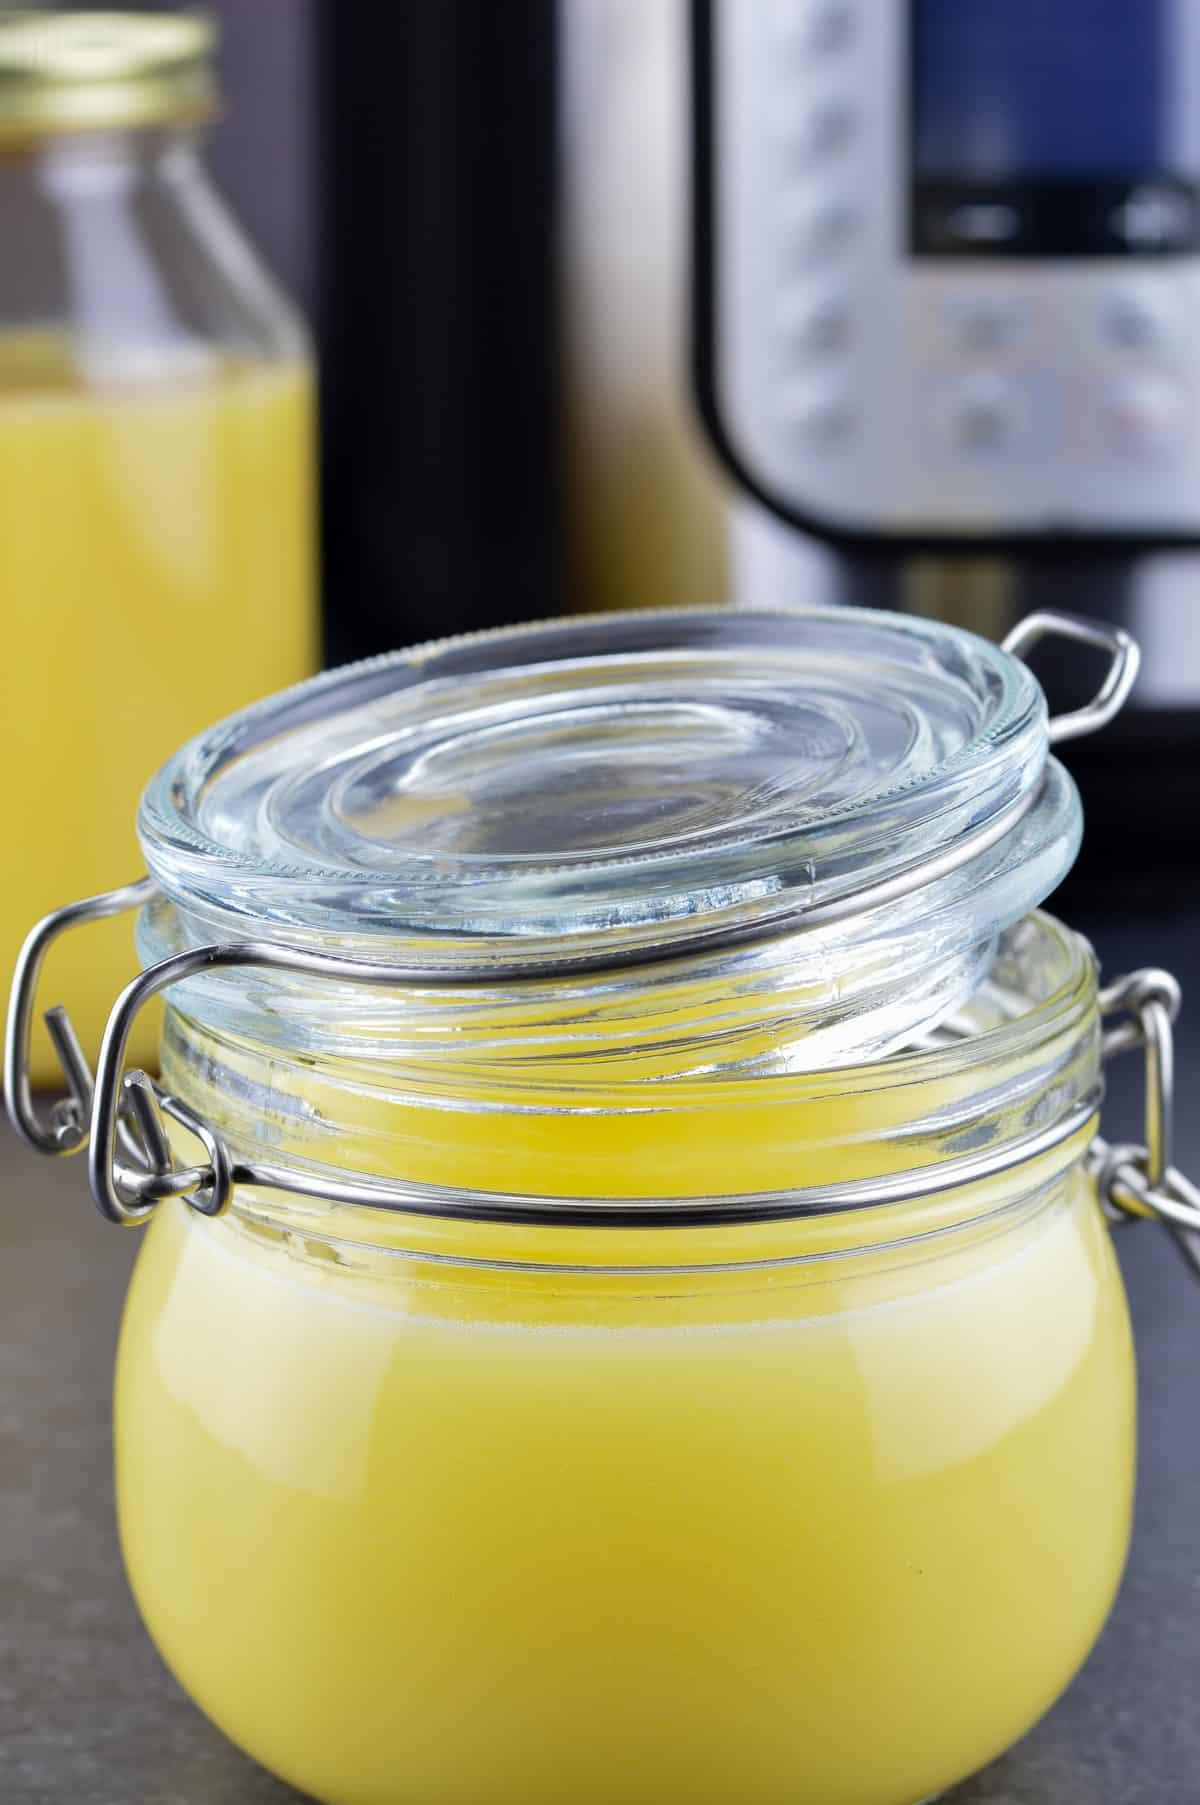 Instant Pot ghee in a small glass jar, and another bottle of ghee & Instant Pot in the background